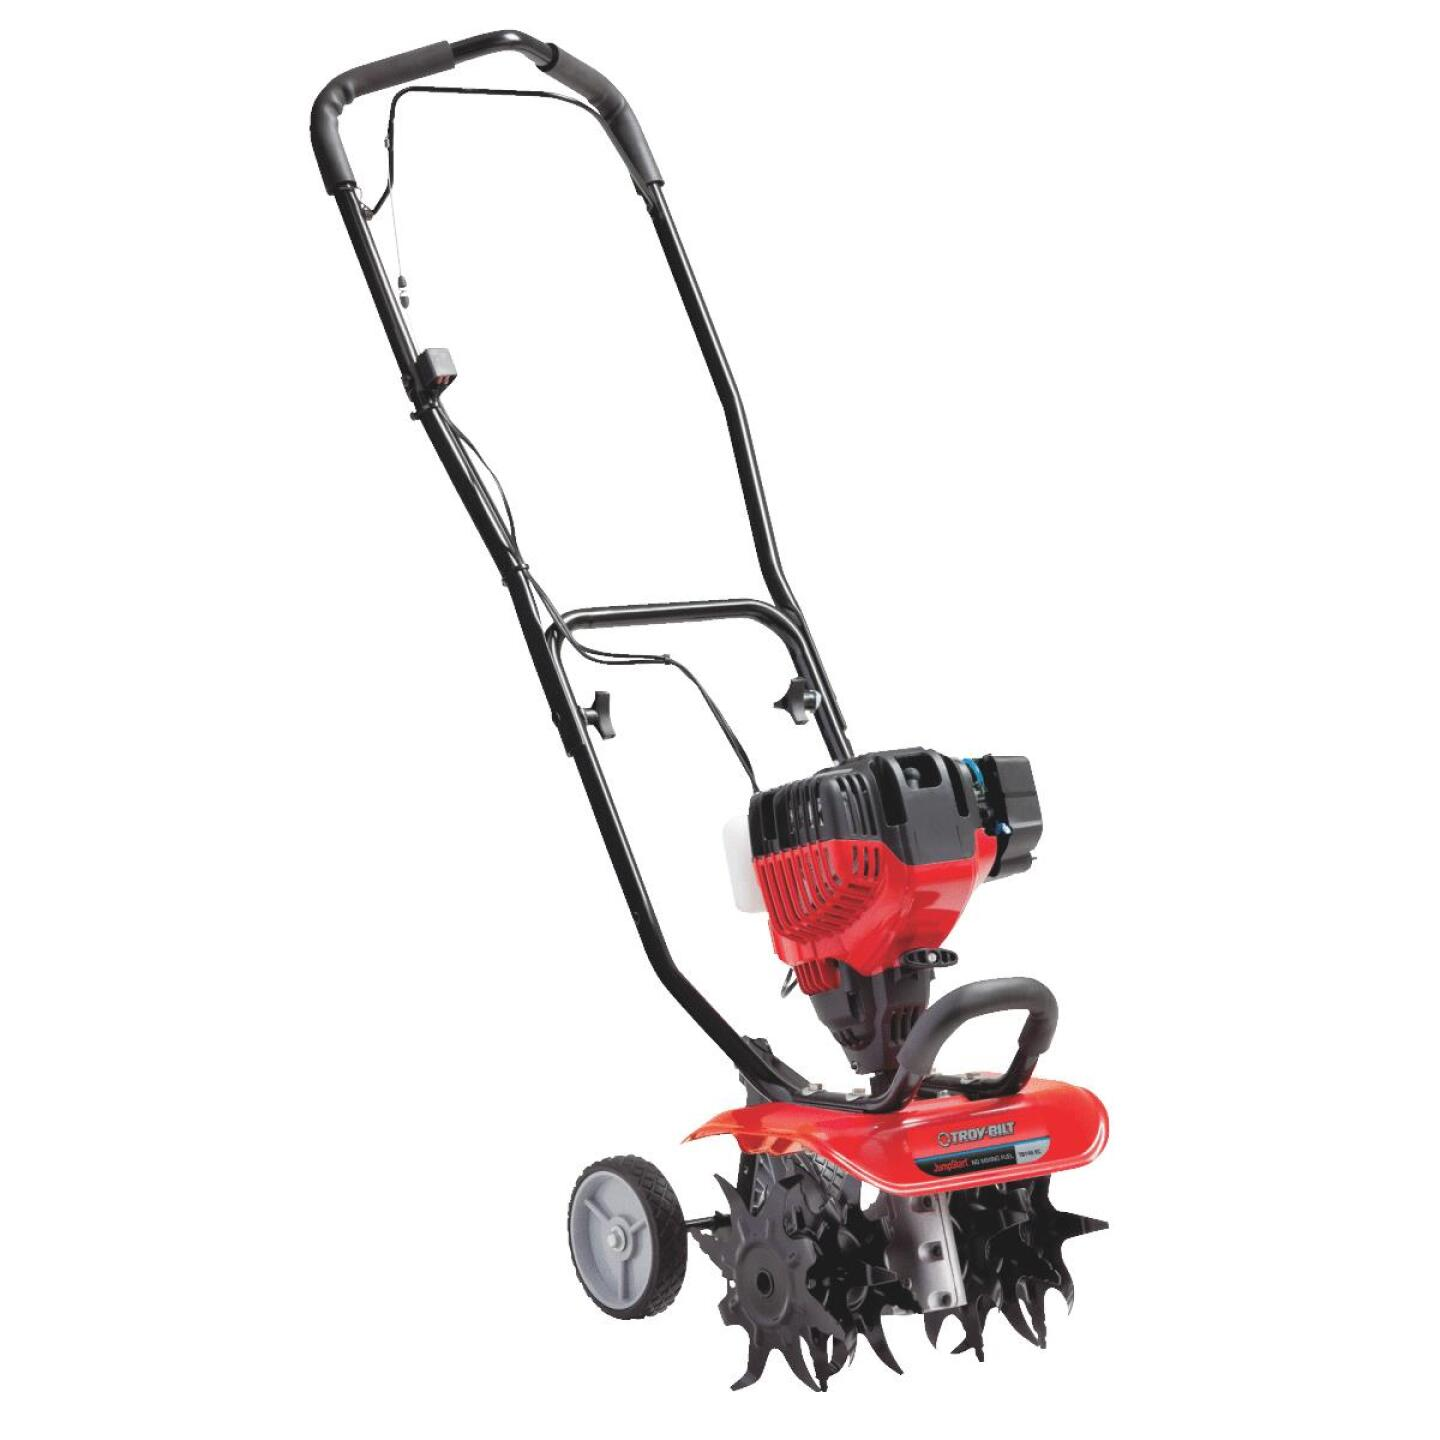 Troy-Bilt TBC304 30cc 4-Cycle Gas Cultivator Image 3